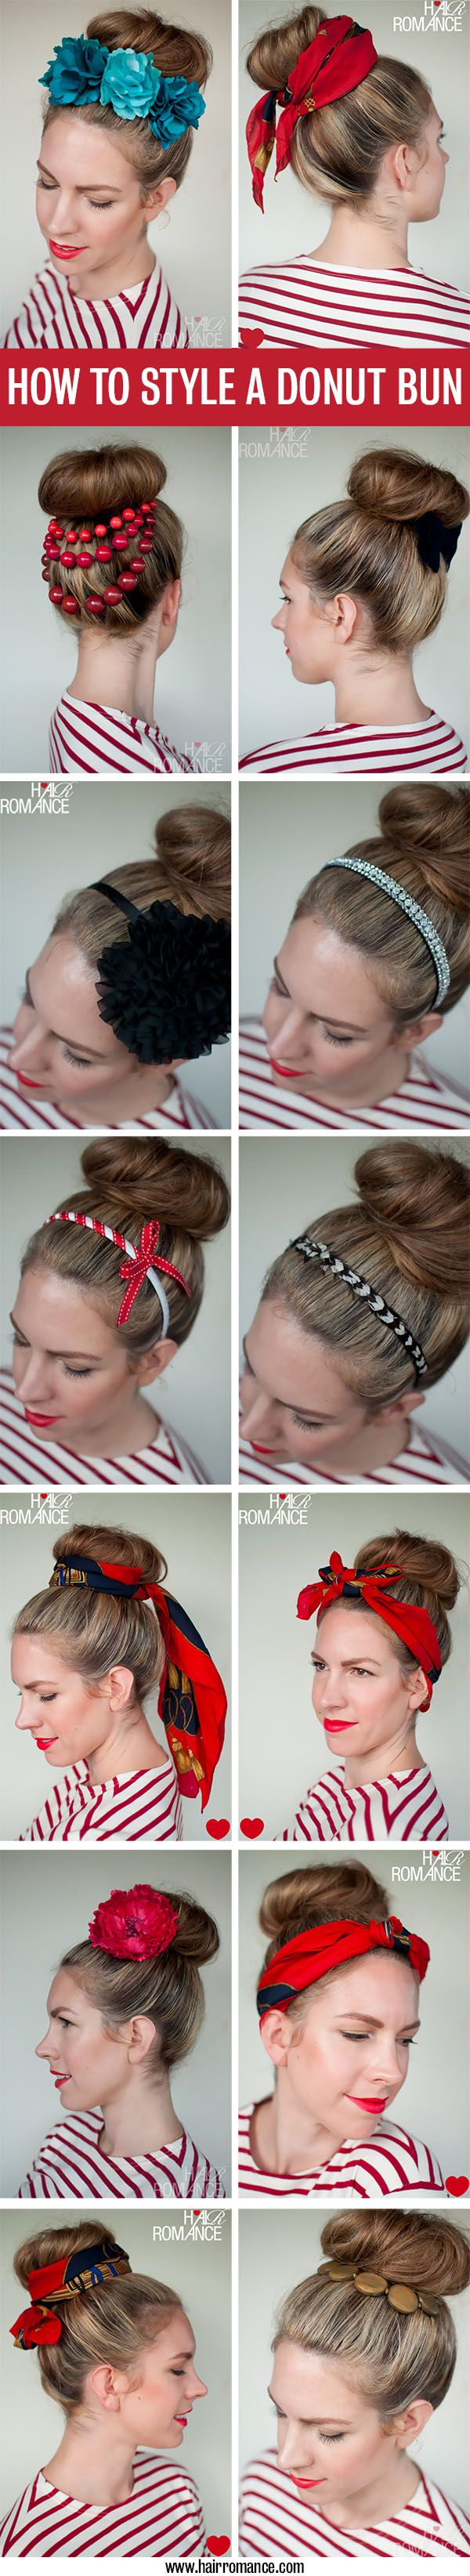 How to do a donut bun - figurative - Hairstyle Fix